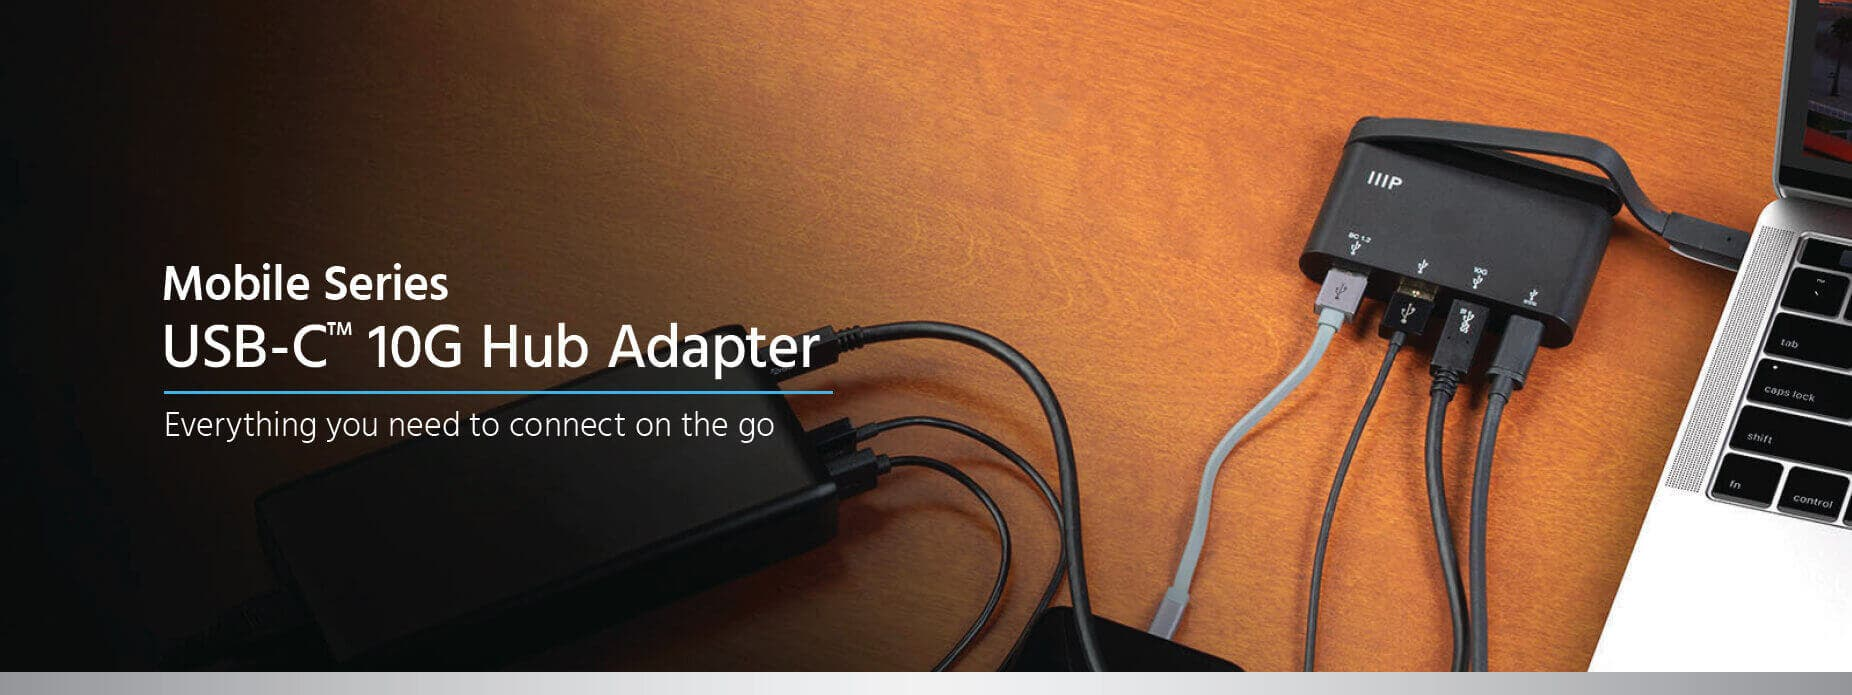 USB-C 10G Hub Adapter